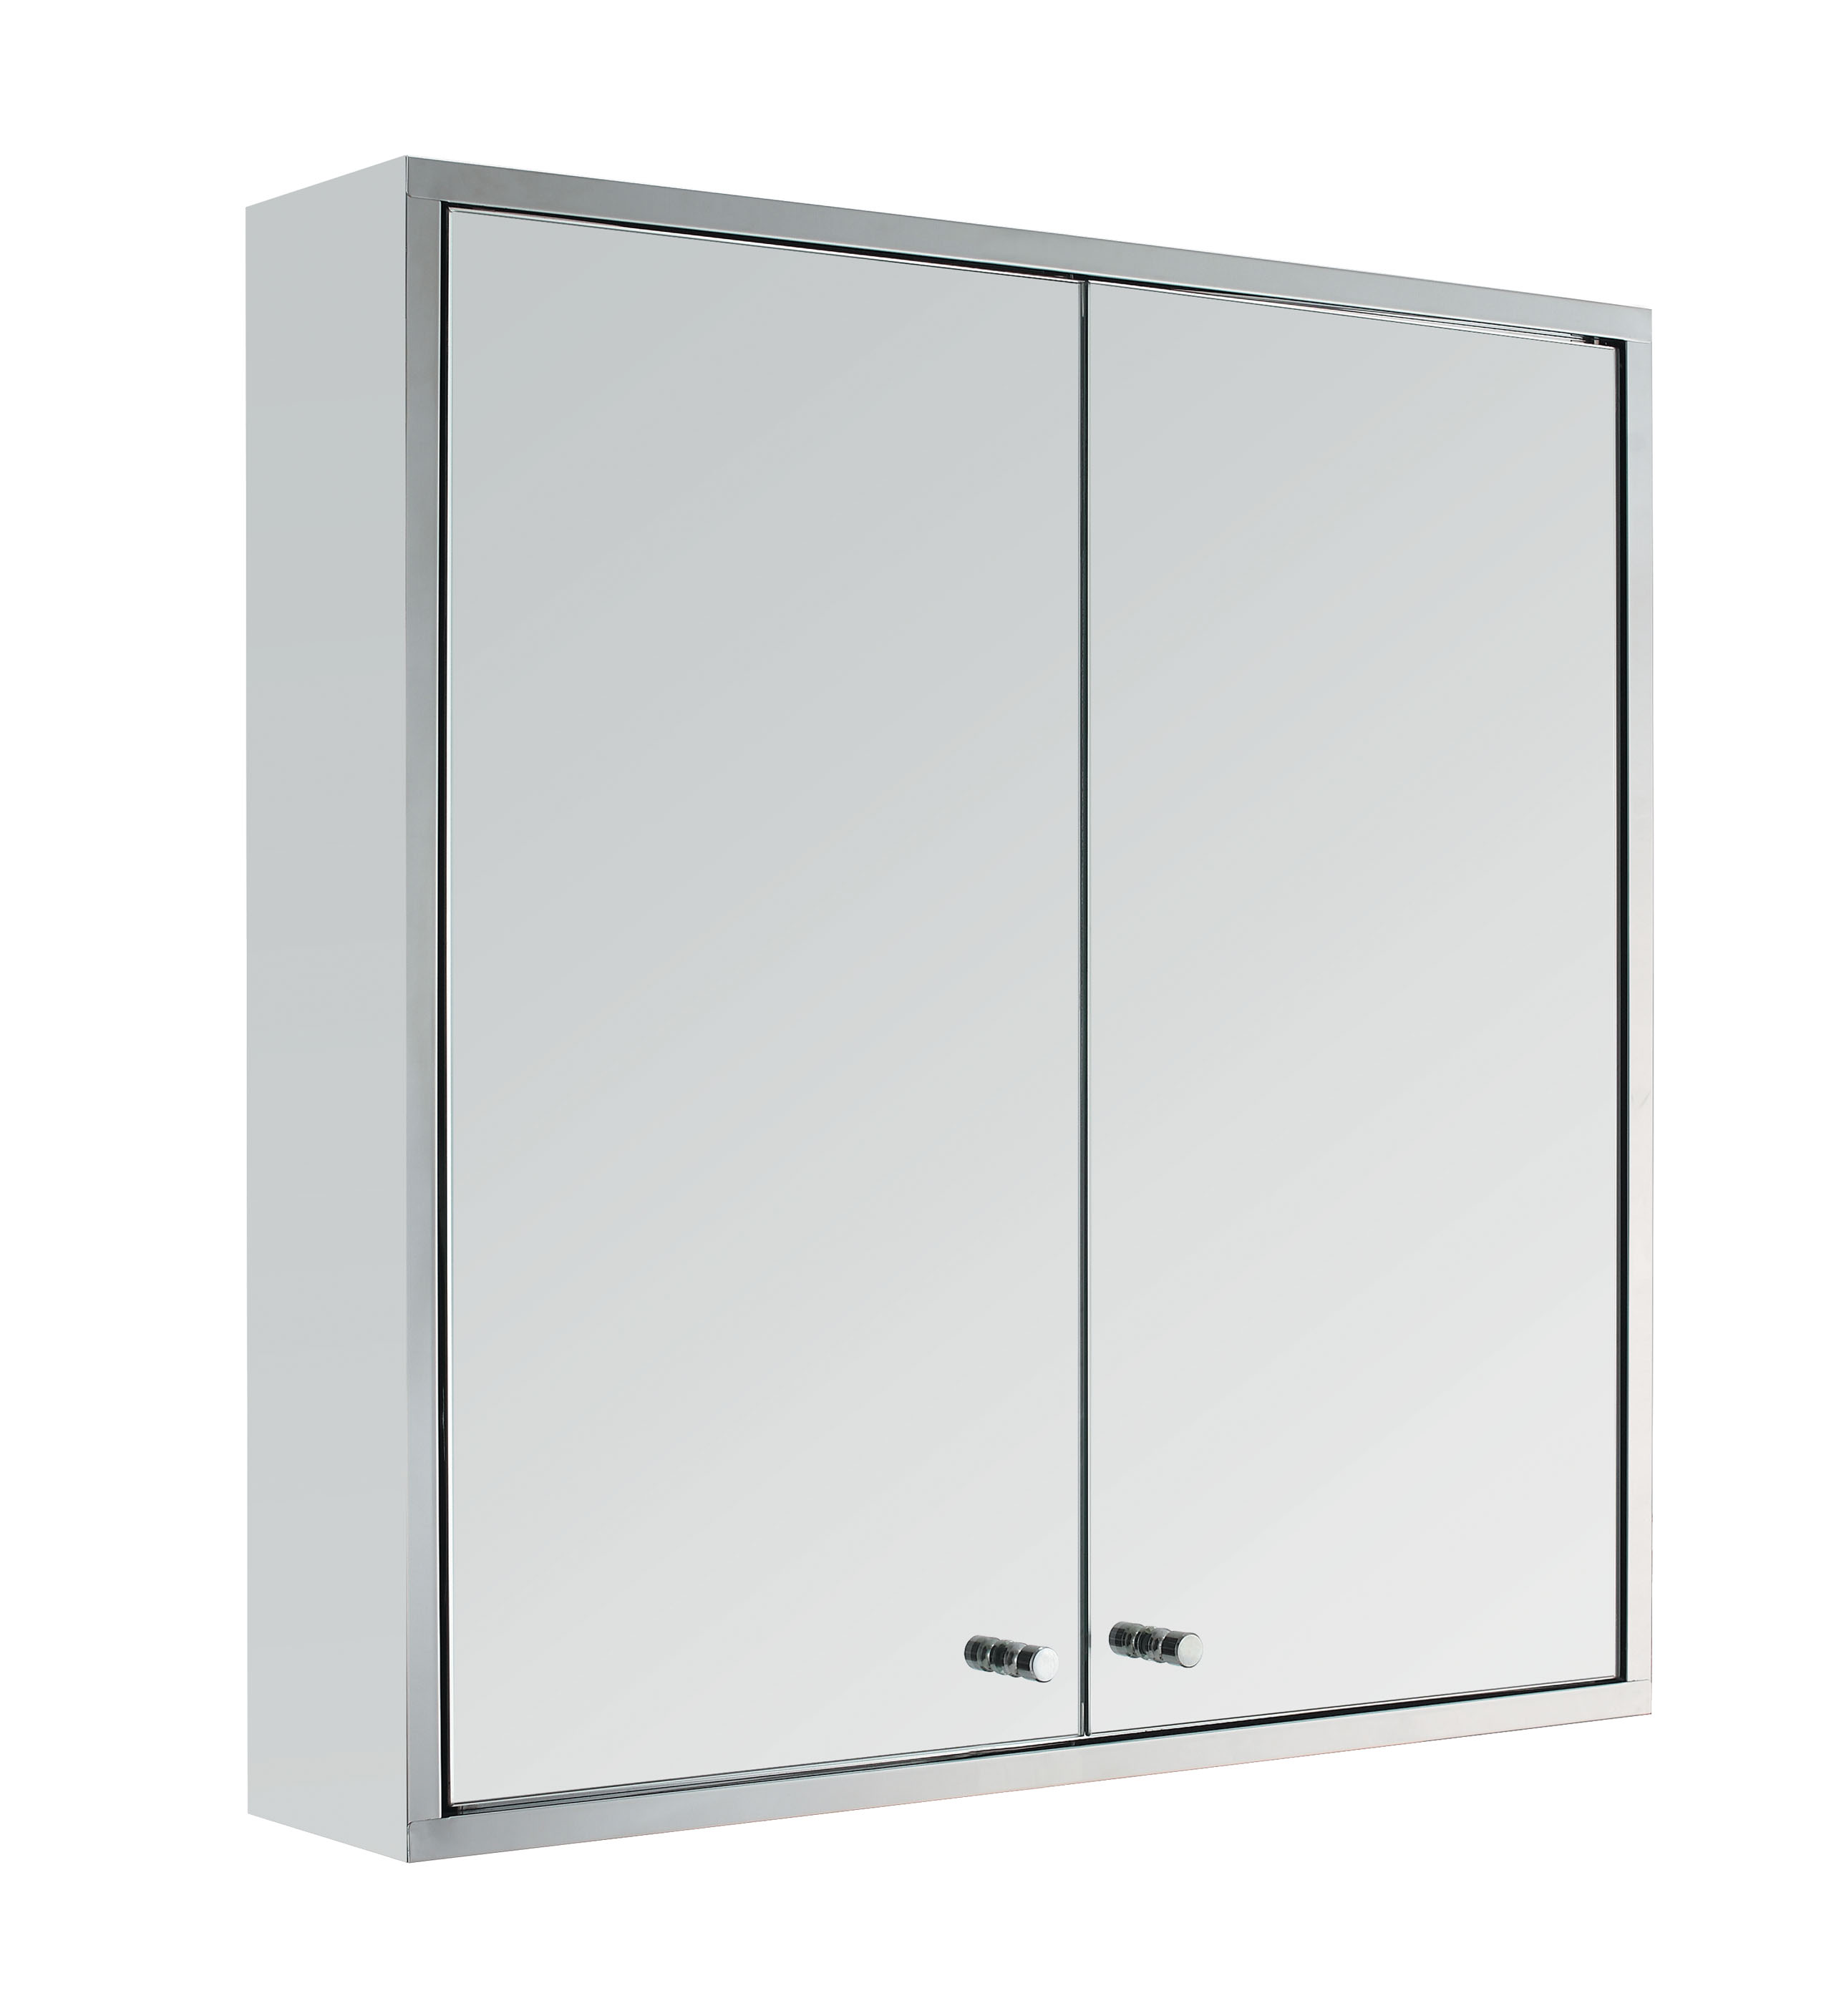 stainless steel double door wall mount bathroom cabinet storage  - sentinel stainless steel double door wall mount bathroom cabinet storagecupboard mirror